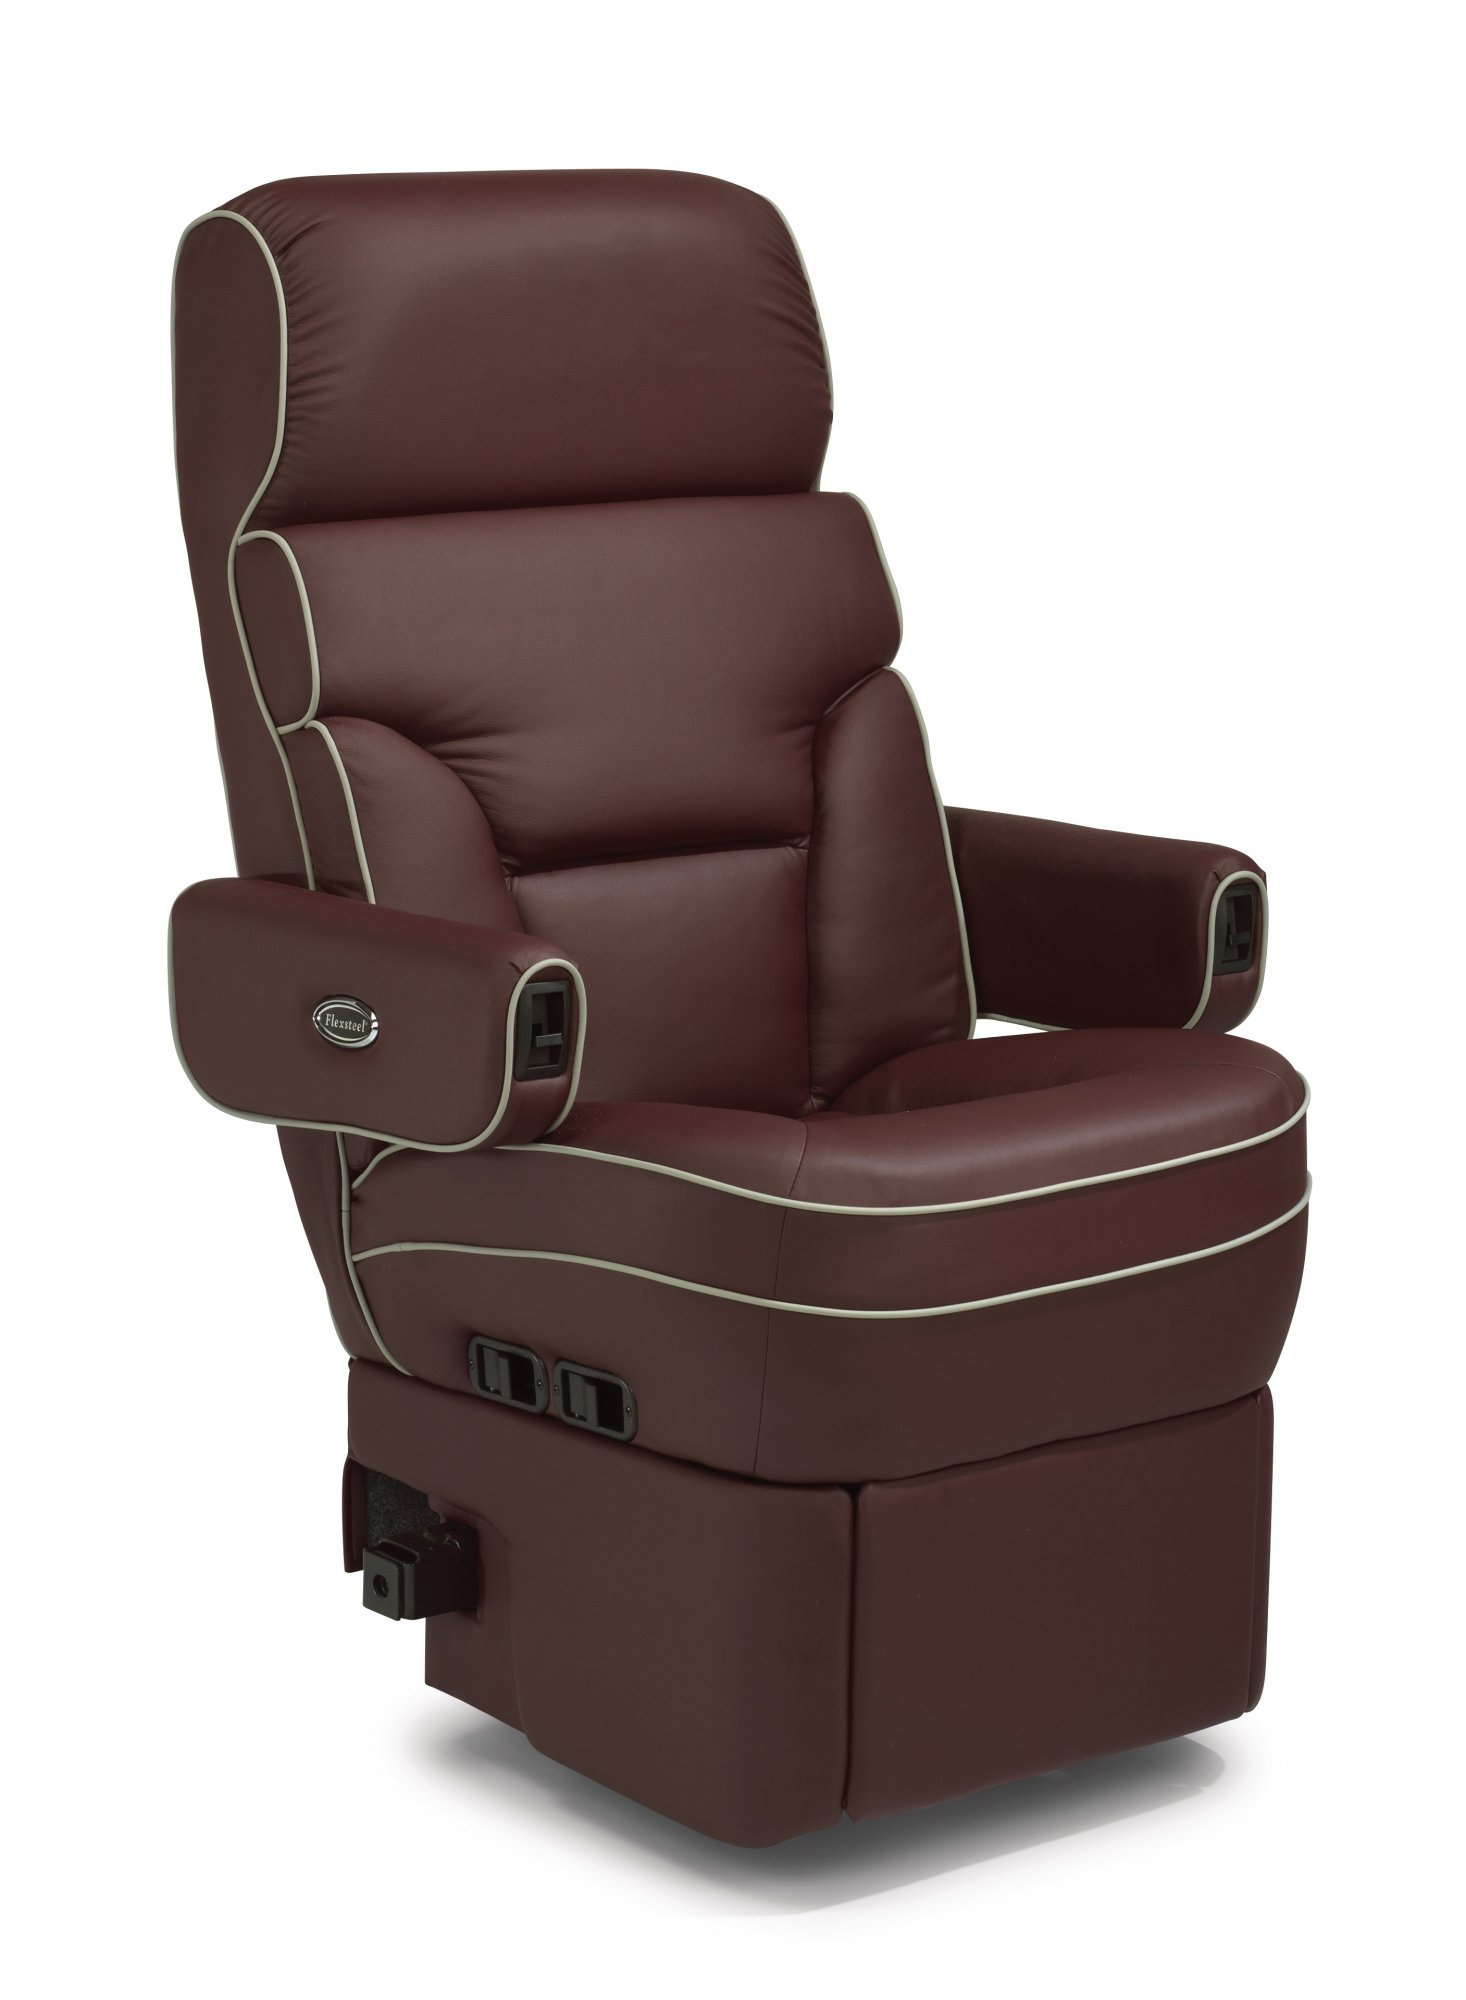 rv furniture captains chairs exercise ball as office chair benefits flexsteel leather seat covers velcromag